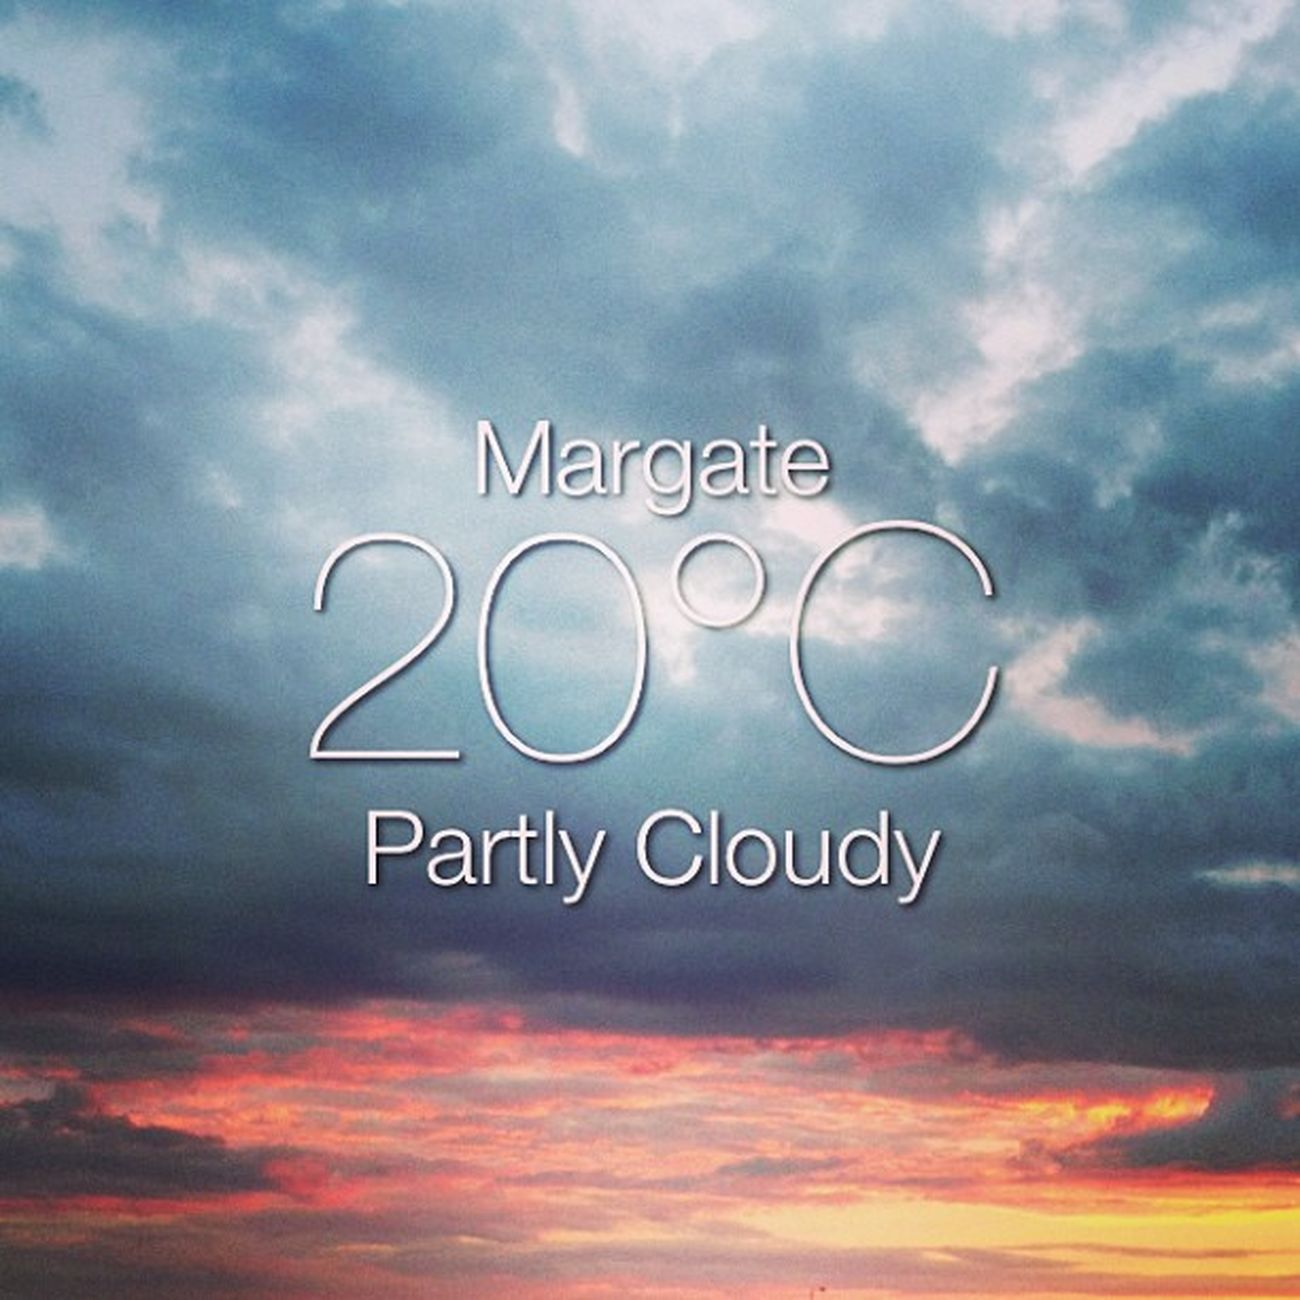 Weather Instaweather Instaweatherpro Sky outdoors nature world margate unitedkingdom night summer sunset gb